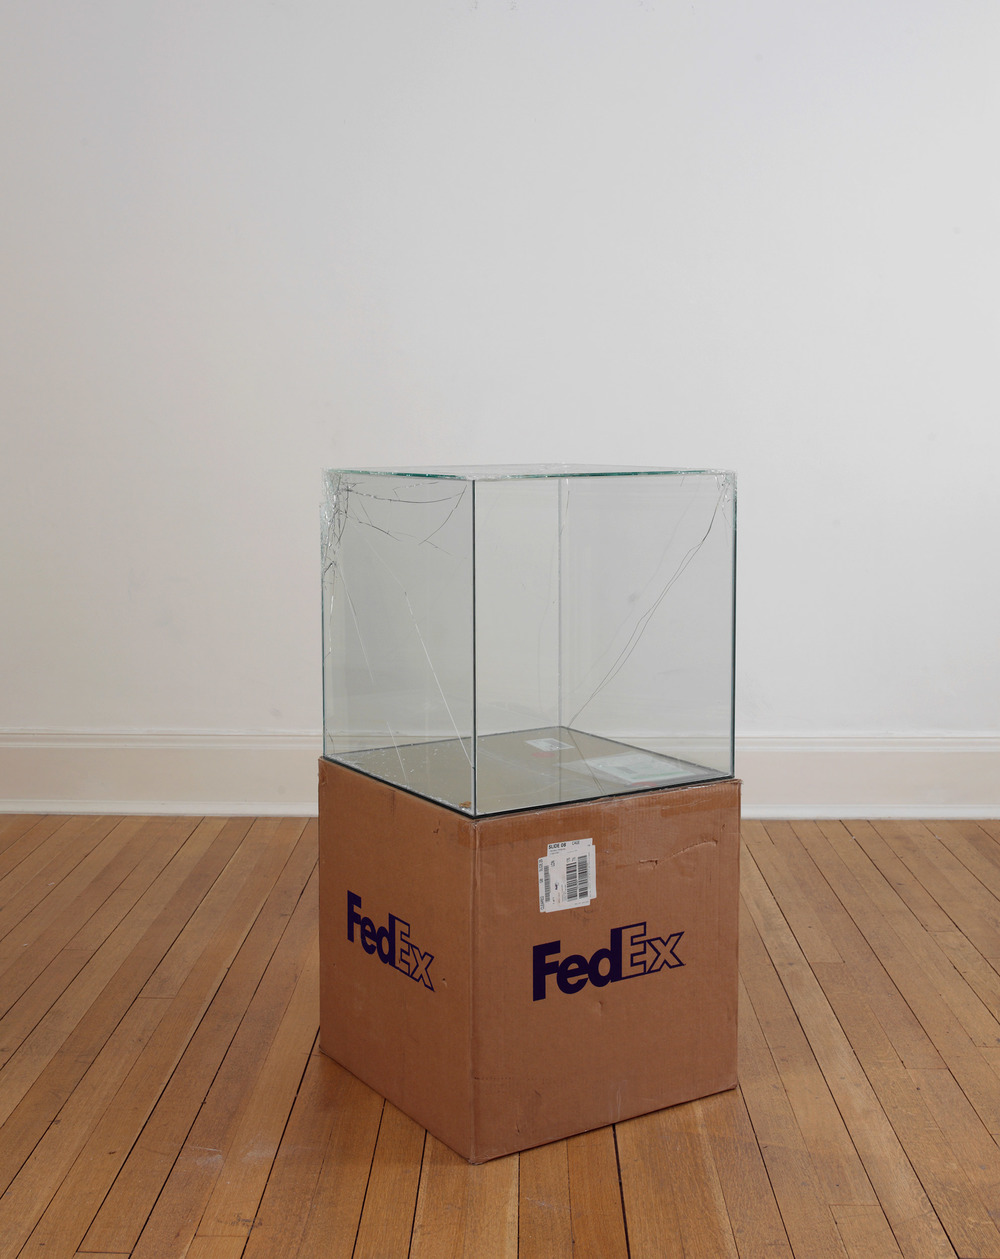 FedEx® Large Kraft Box  © 2008 FEDEX 330510 REV 6/08 GP, International Priority, Los Angeles–London trk#868587728050, October 02–05, 2009    2009–   Laminated glass, FedEx shipping box, accrued FedEx shipping and tracking labels, silicone, metal, tape  24 x 24 x 24 inches   Production Stills, 2009